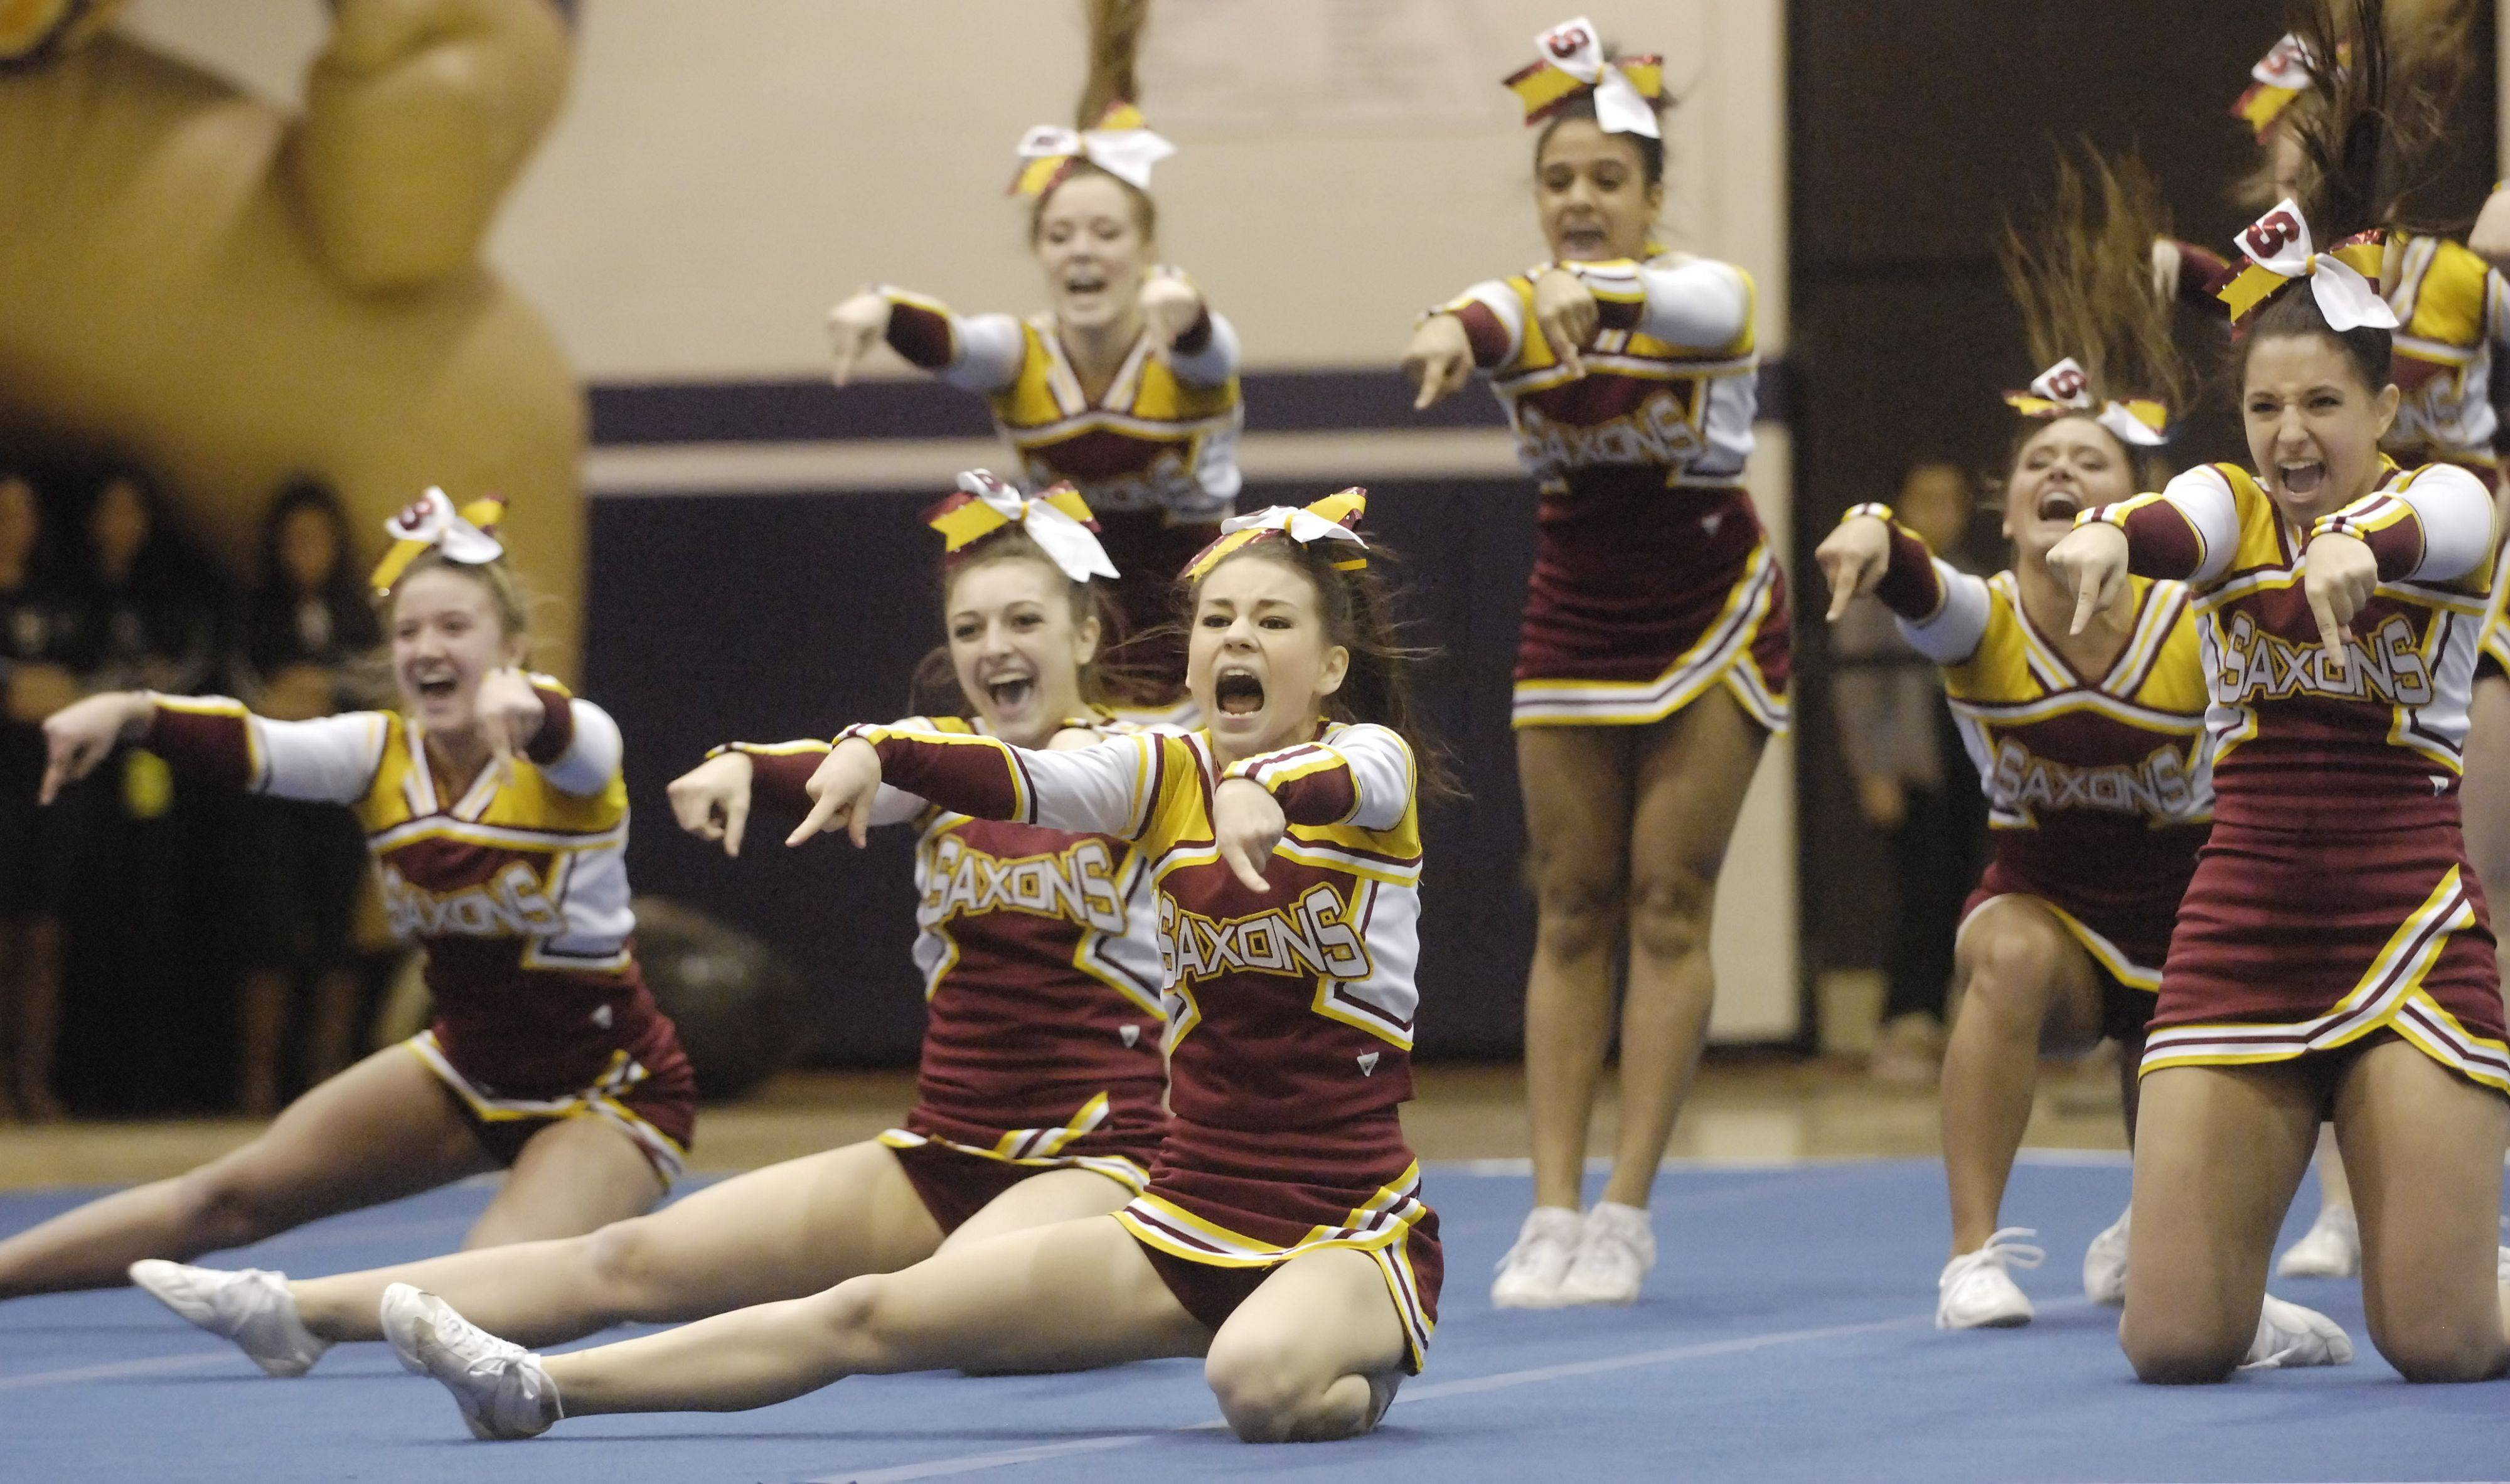 Schaumburg competes during Saturday's cheerleading sectional hosted by Rolling Meadows High School.